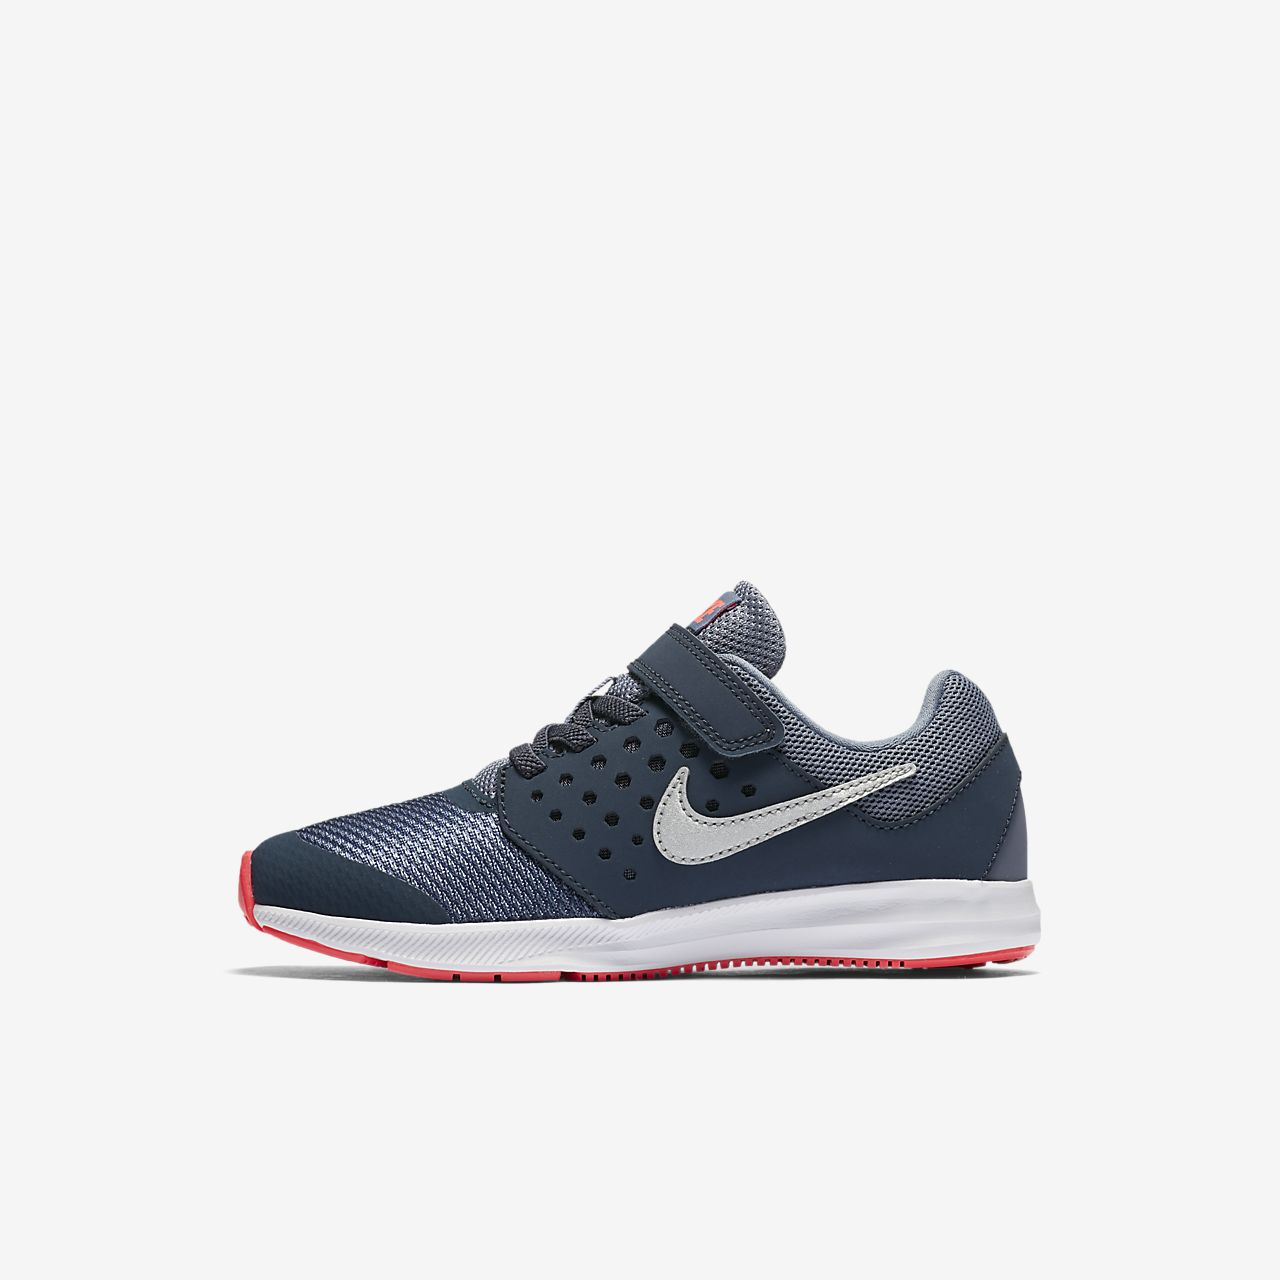 Zapatos azules Nike Downshifter infantiles